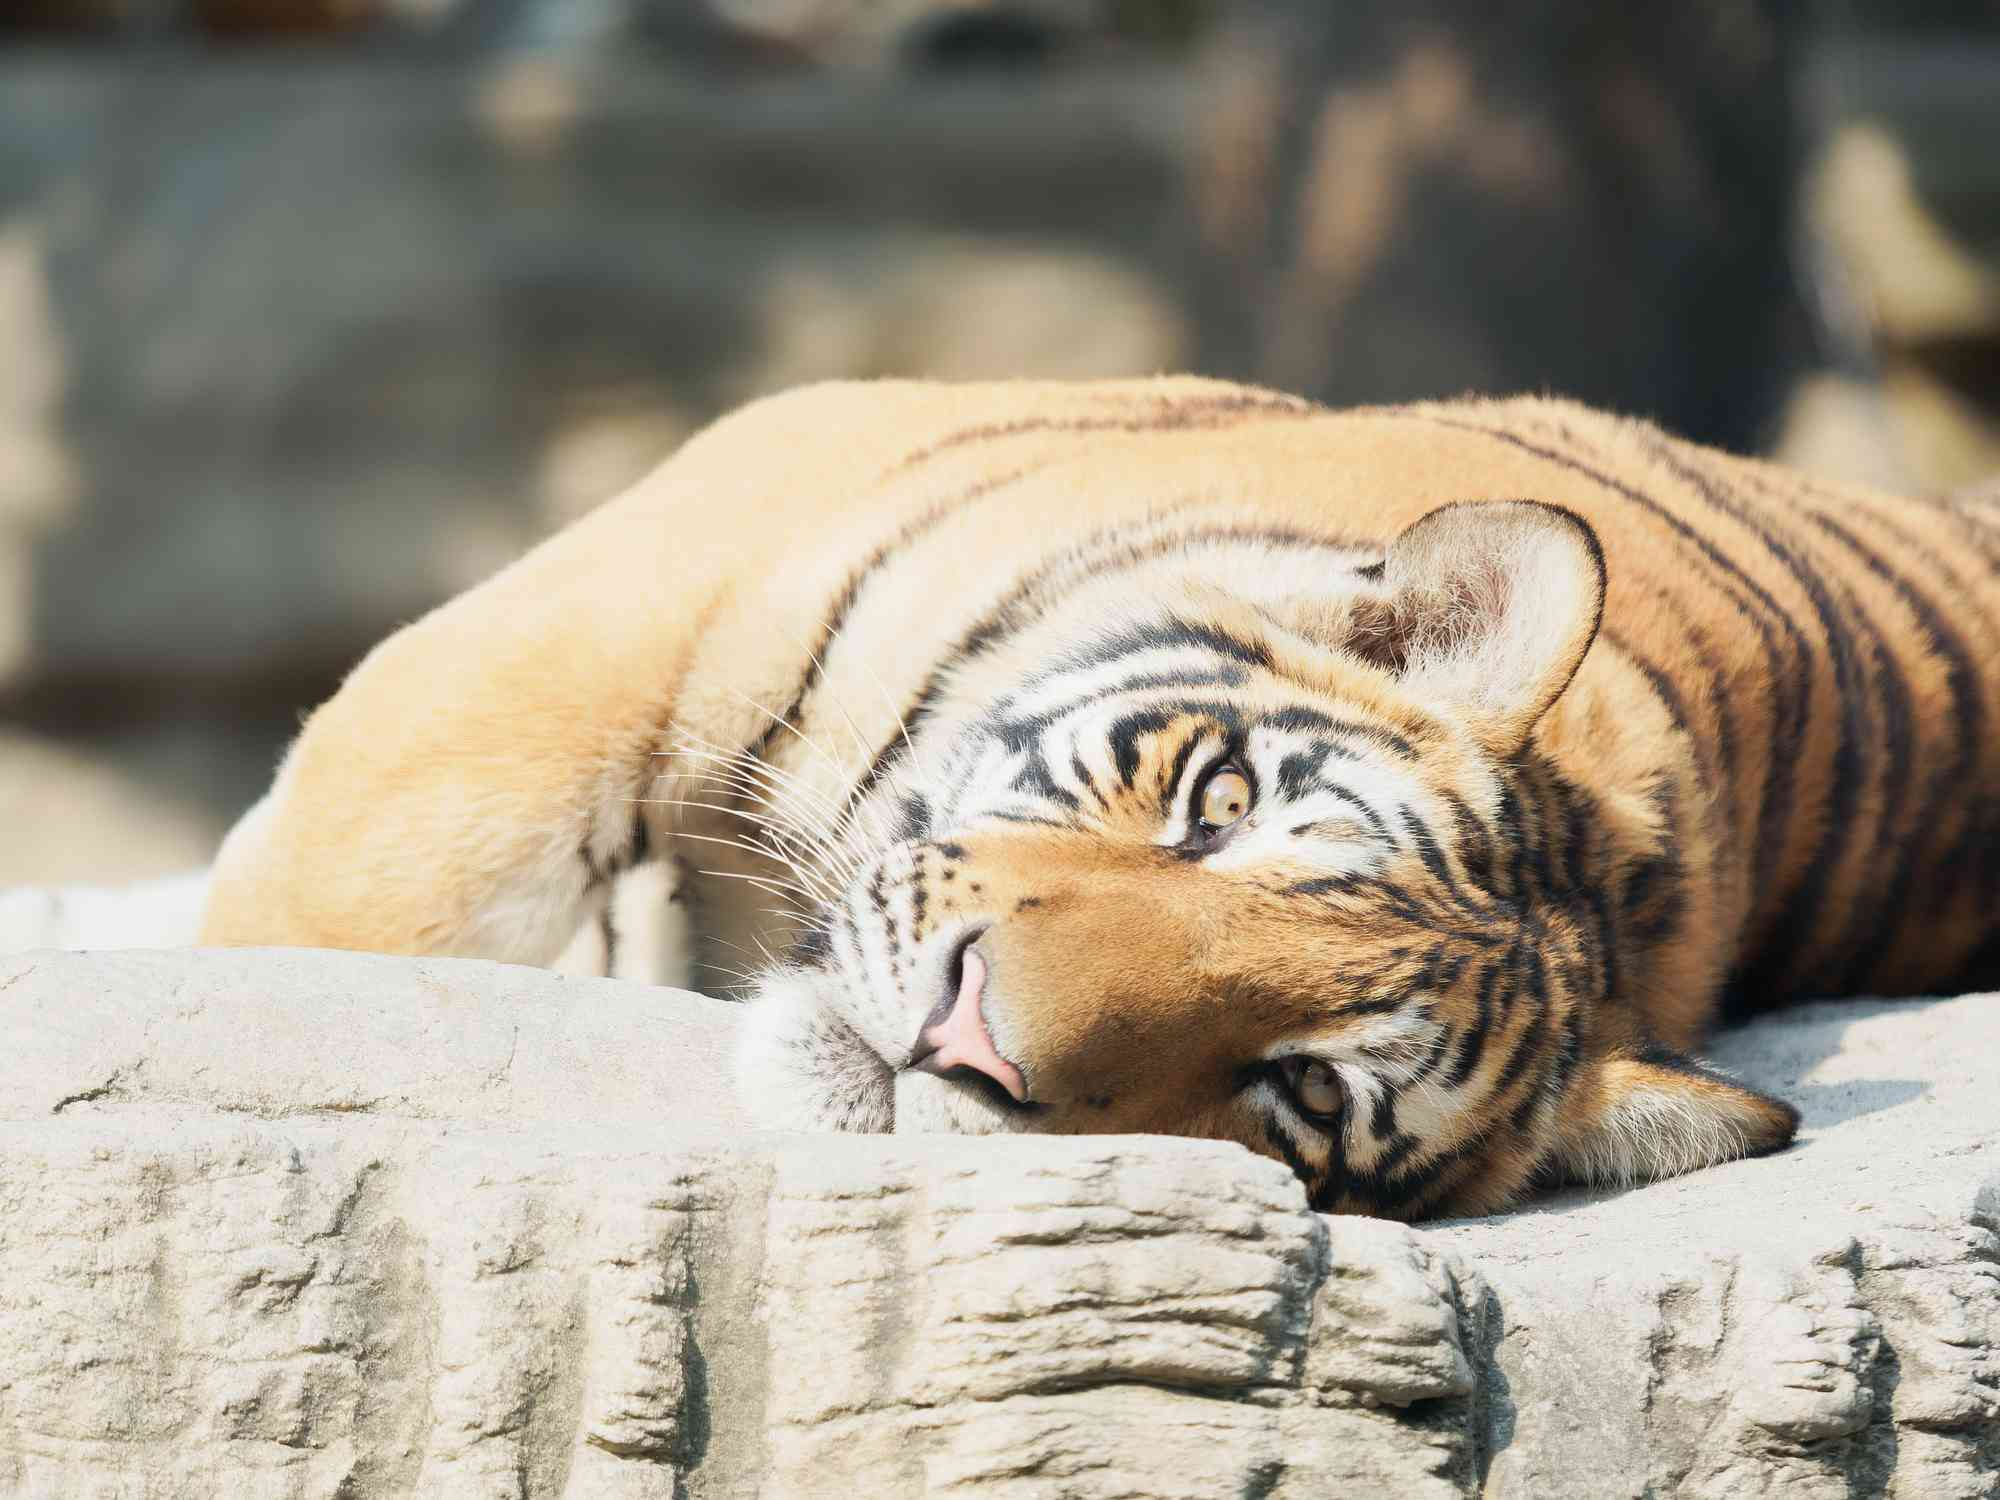 An adult South China tiger